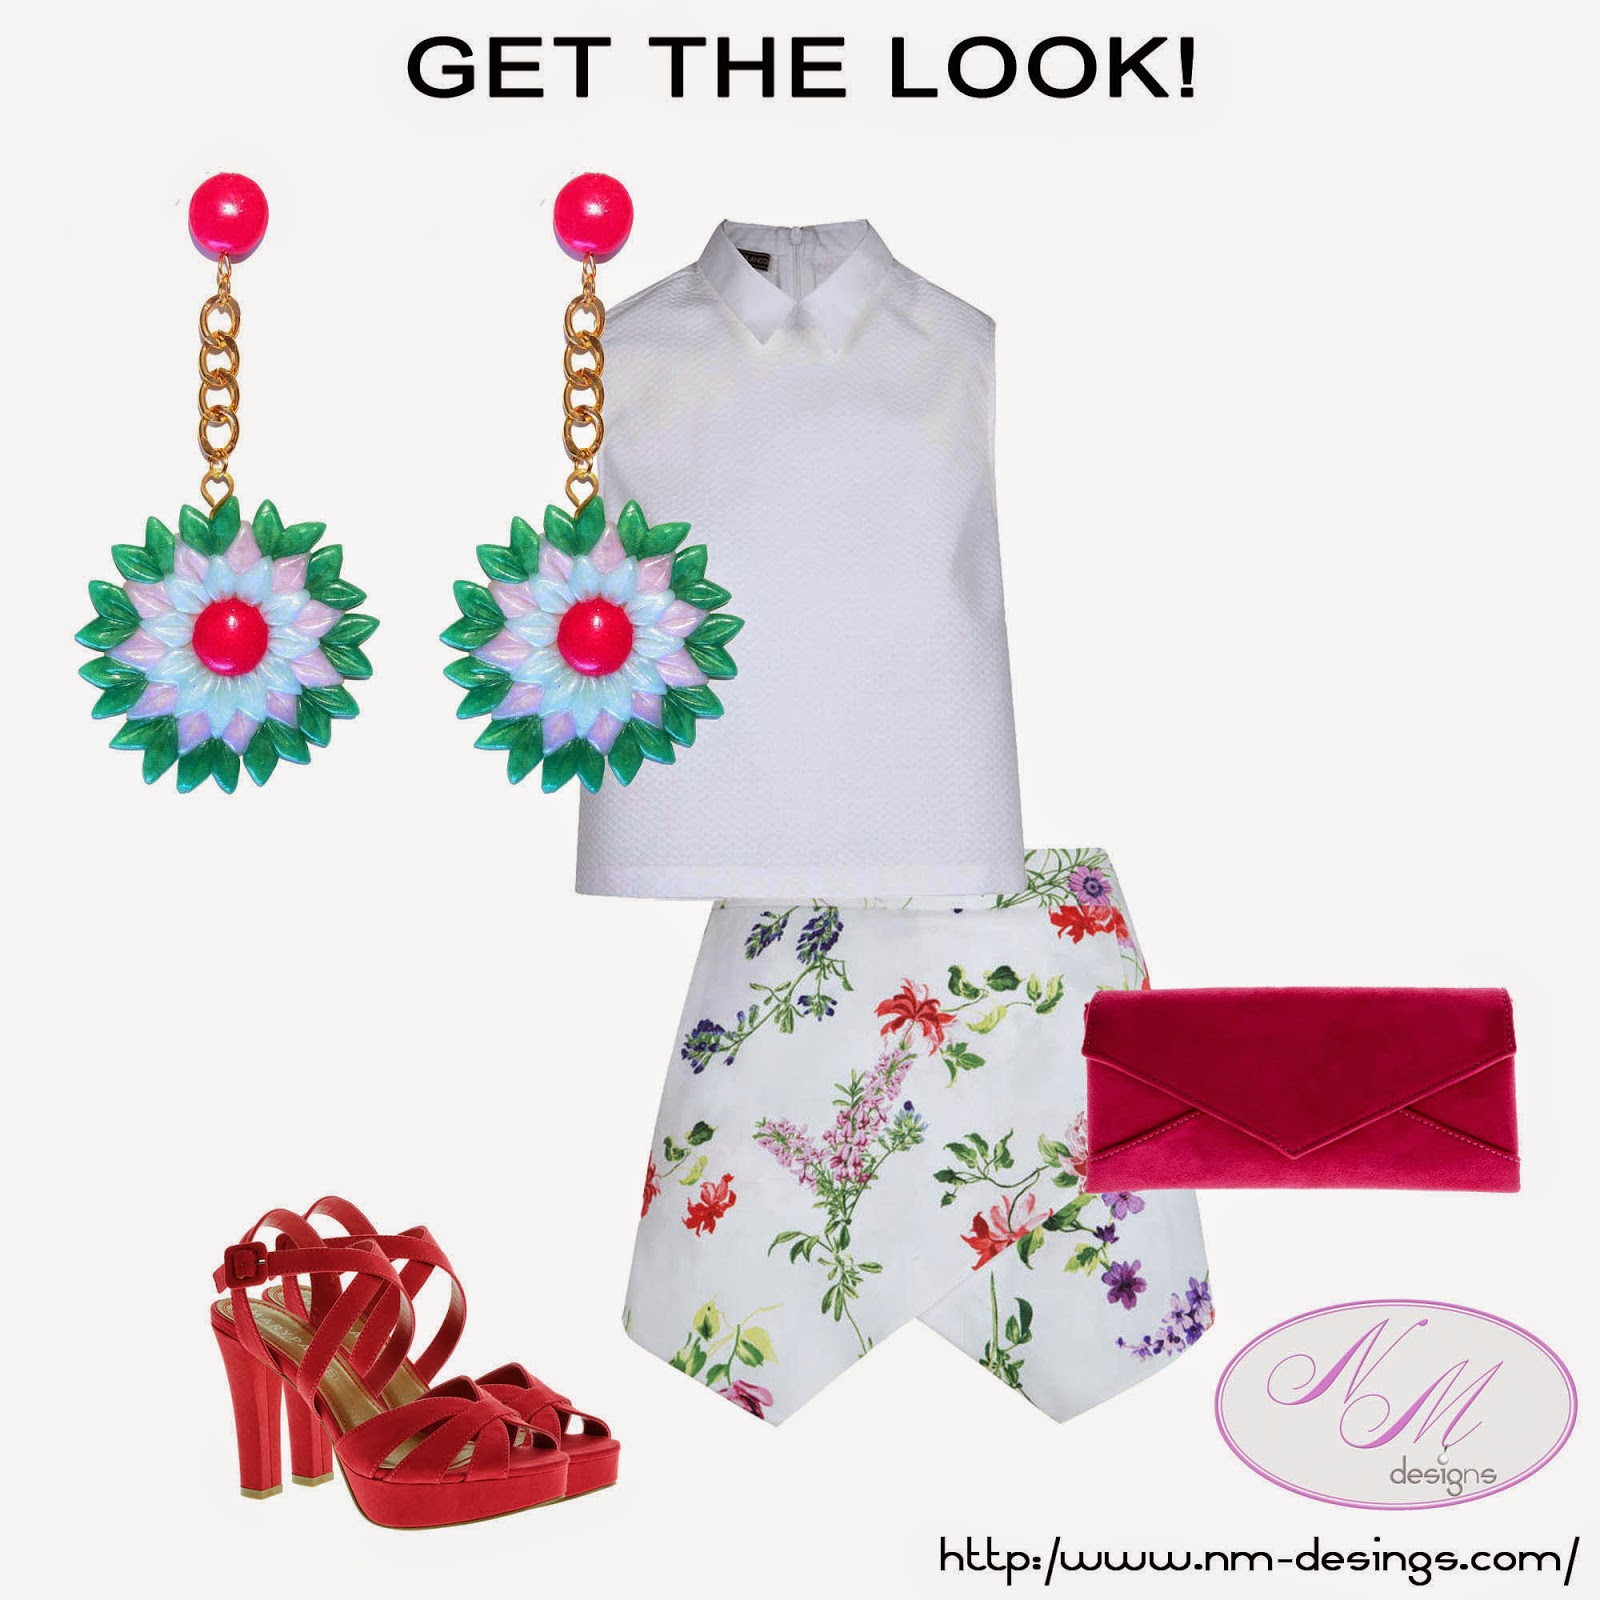 """GET THE LOOK"" from 18th of June, 2014"